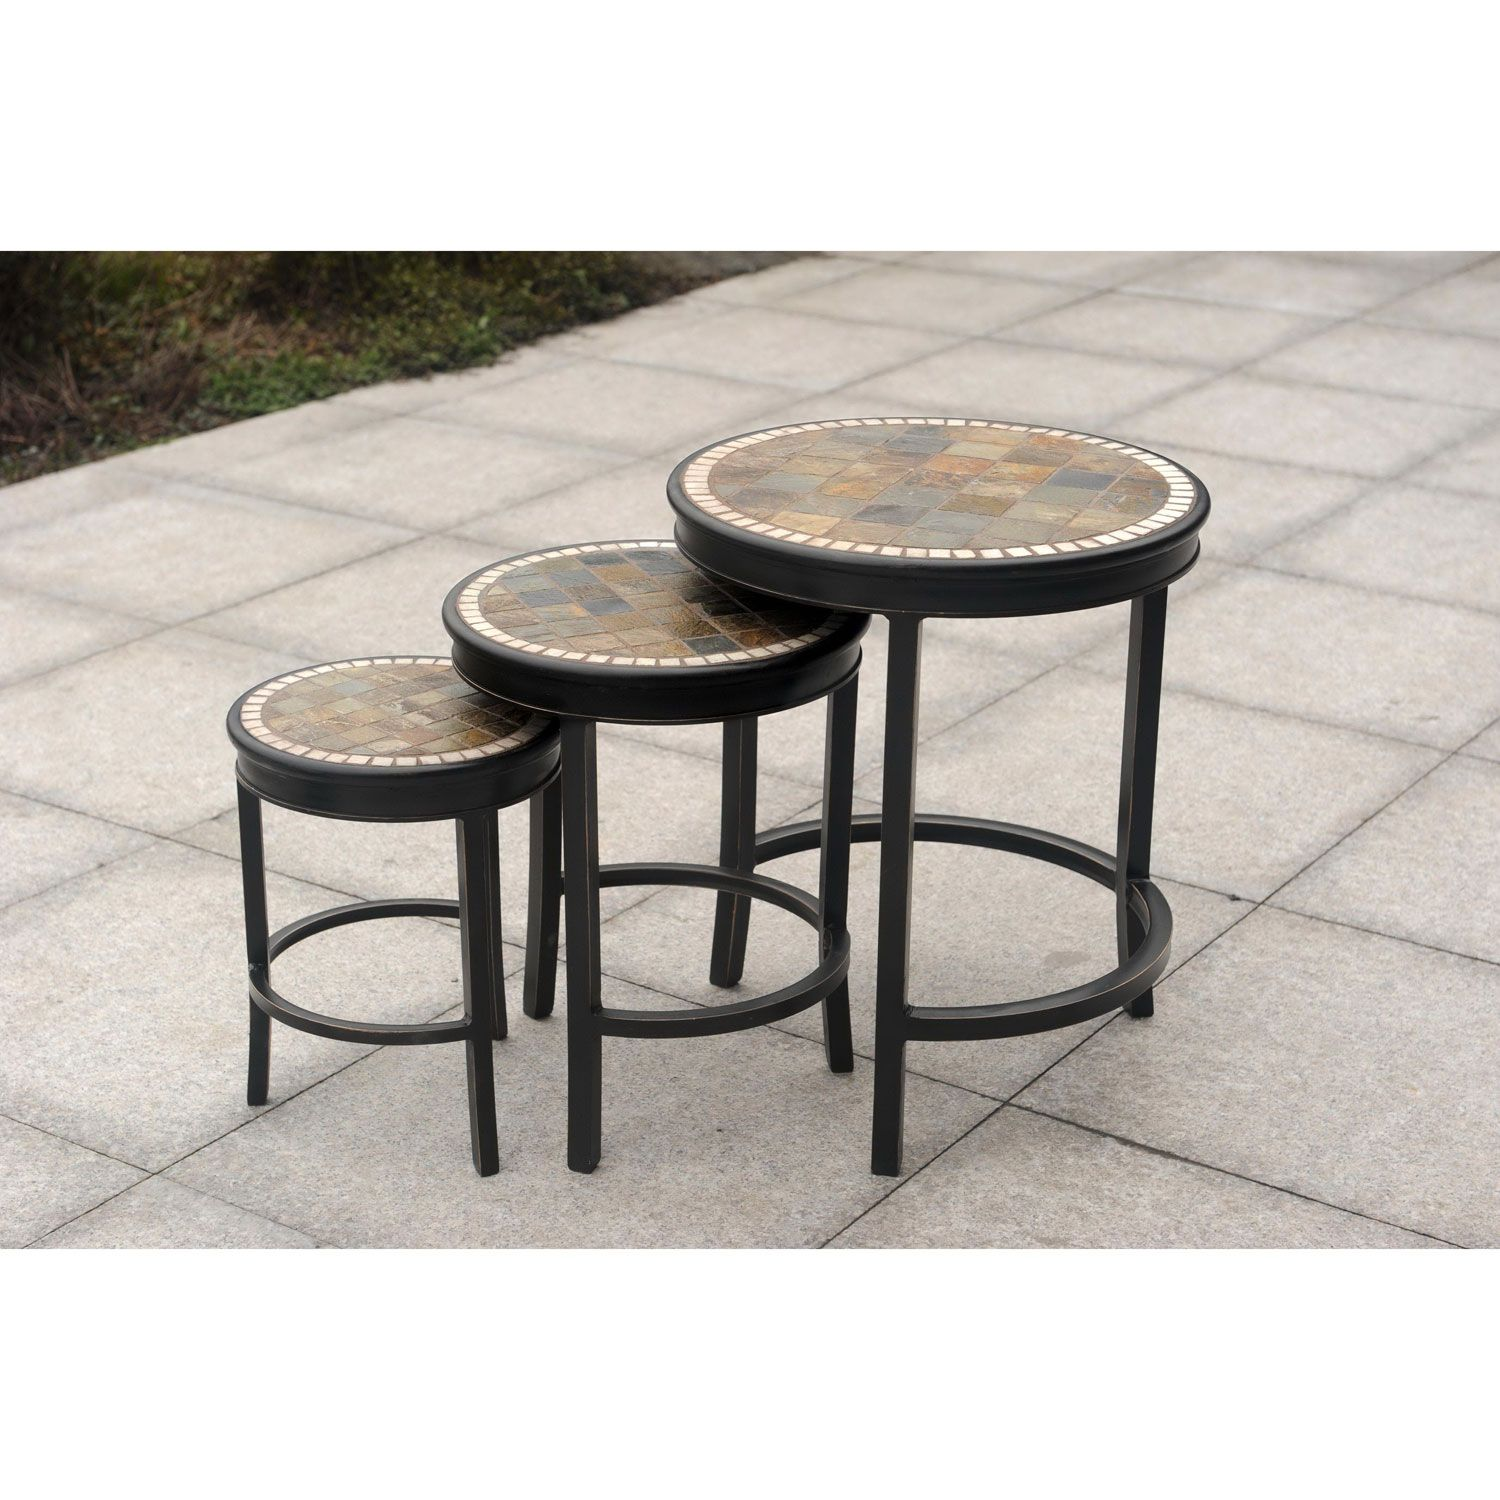 lovely patio accent table design uttermost tables outdoor black distressed side wine glass cabinet kids lamp metal set nesting nite stands furniture with drawer coffee ideas